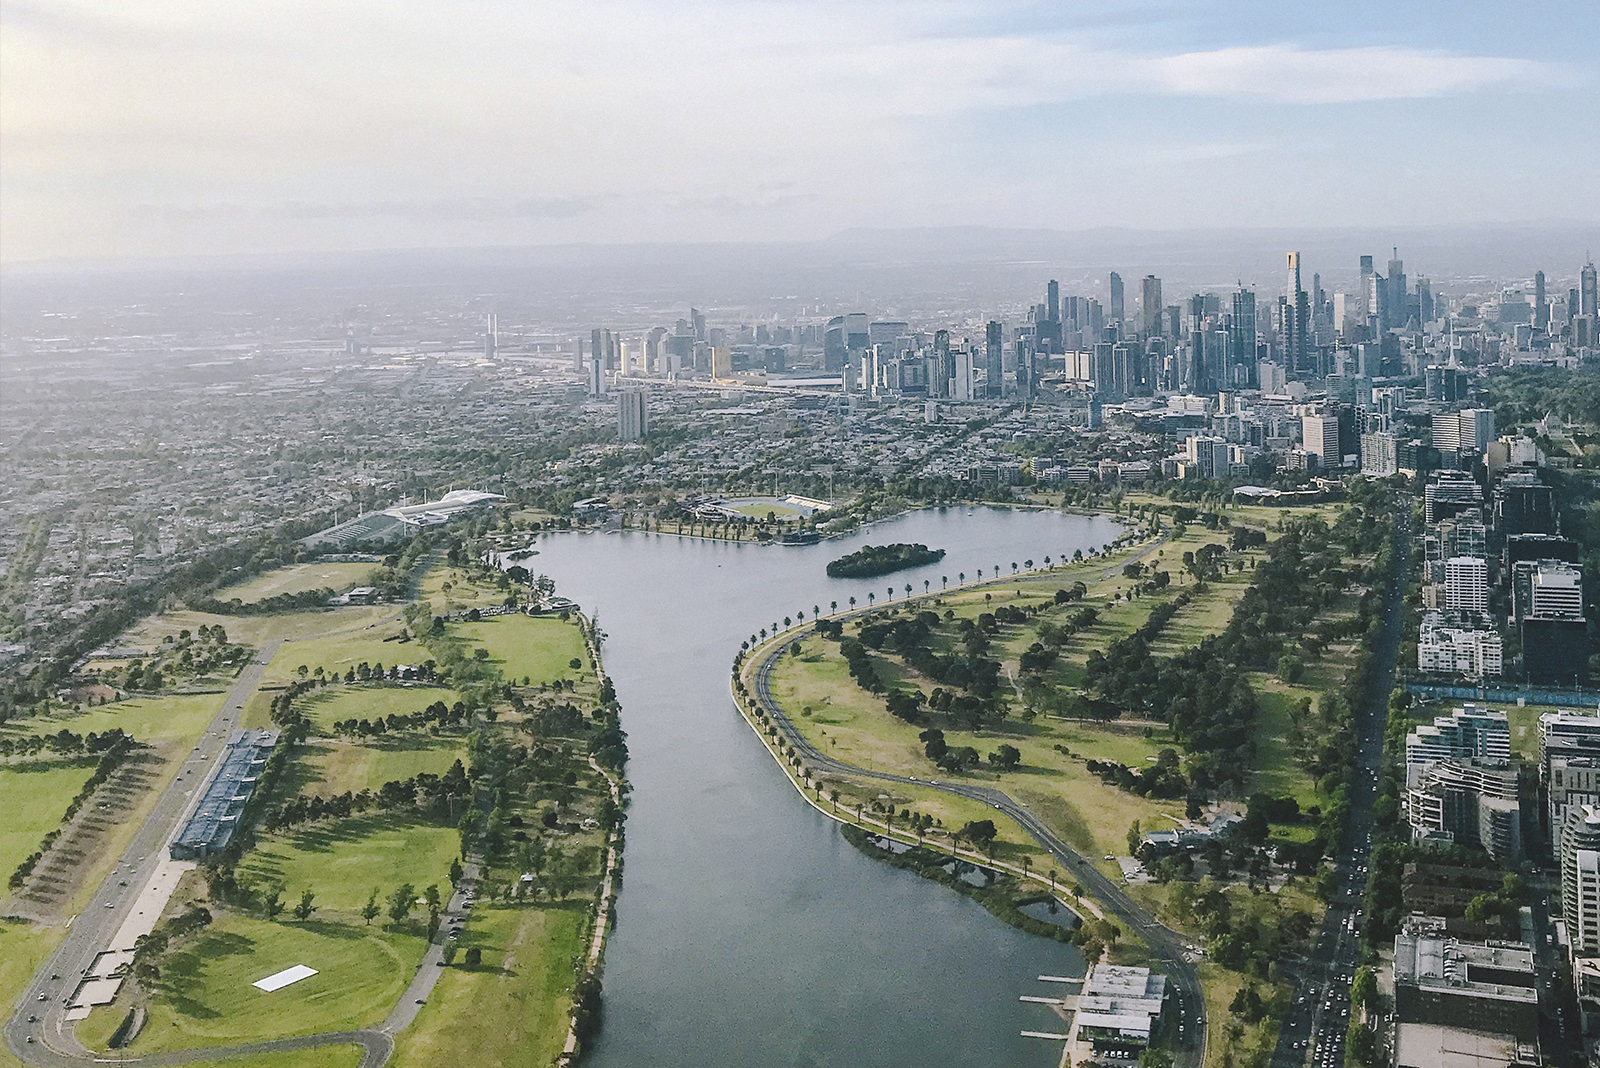 Melbourne Restrictions Lifted: How it will Impact Real Estate